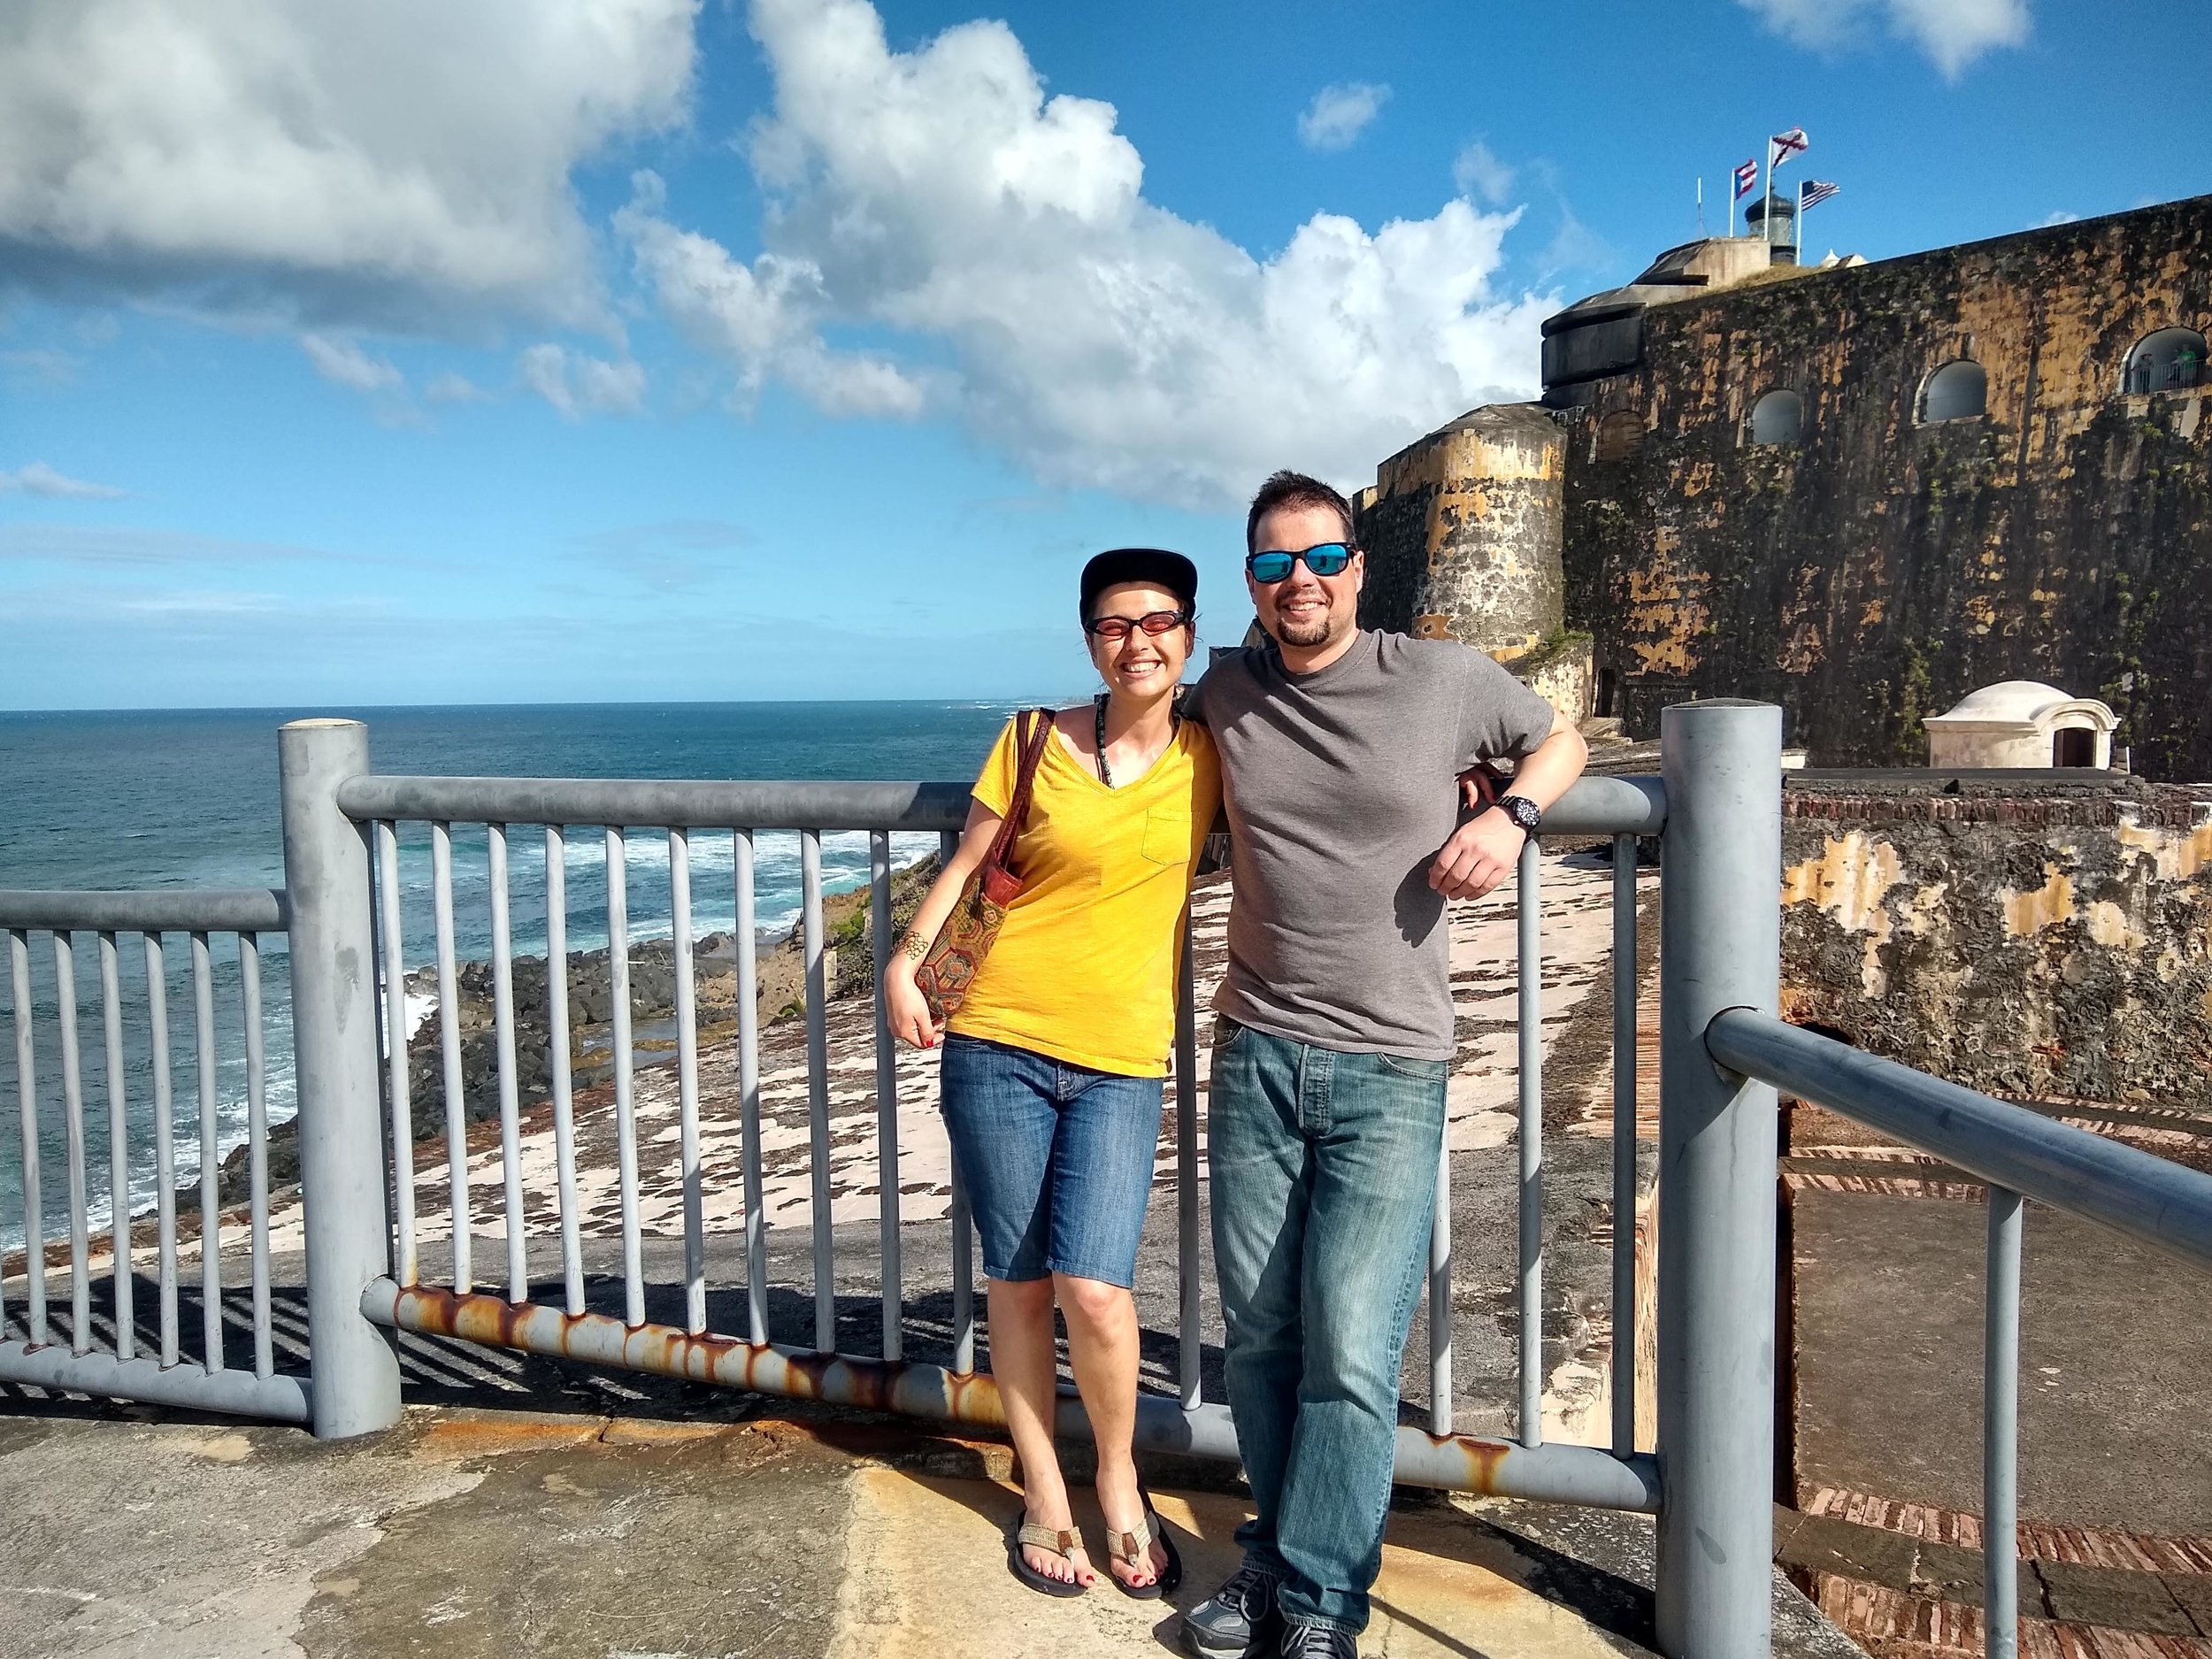 Sam has been exploring historic fortresses in Puerto Rico with his sister